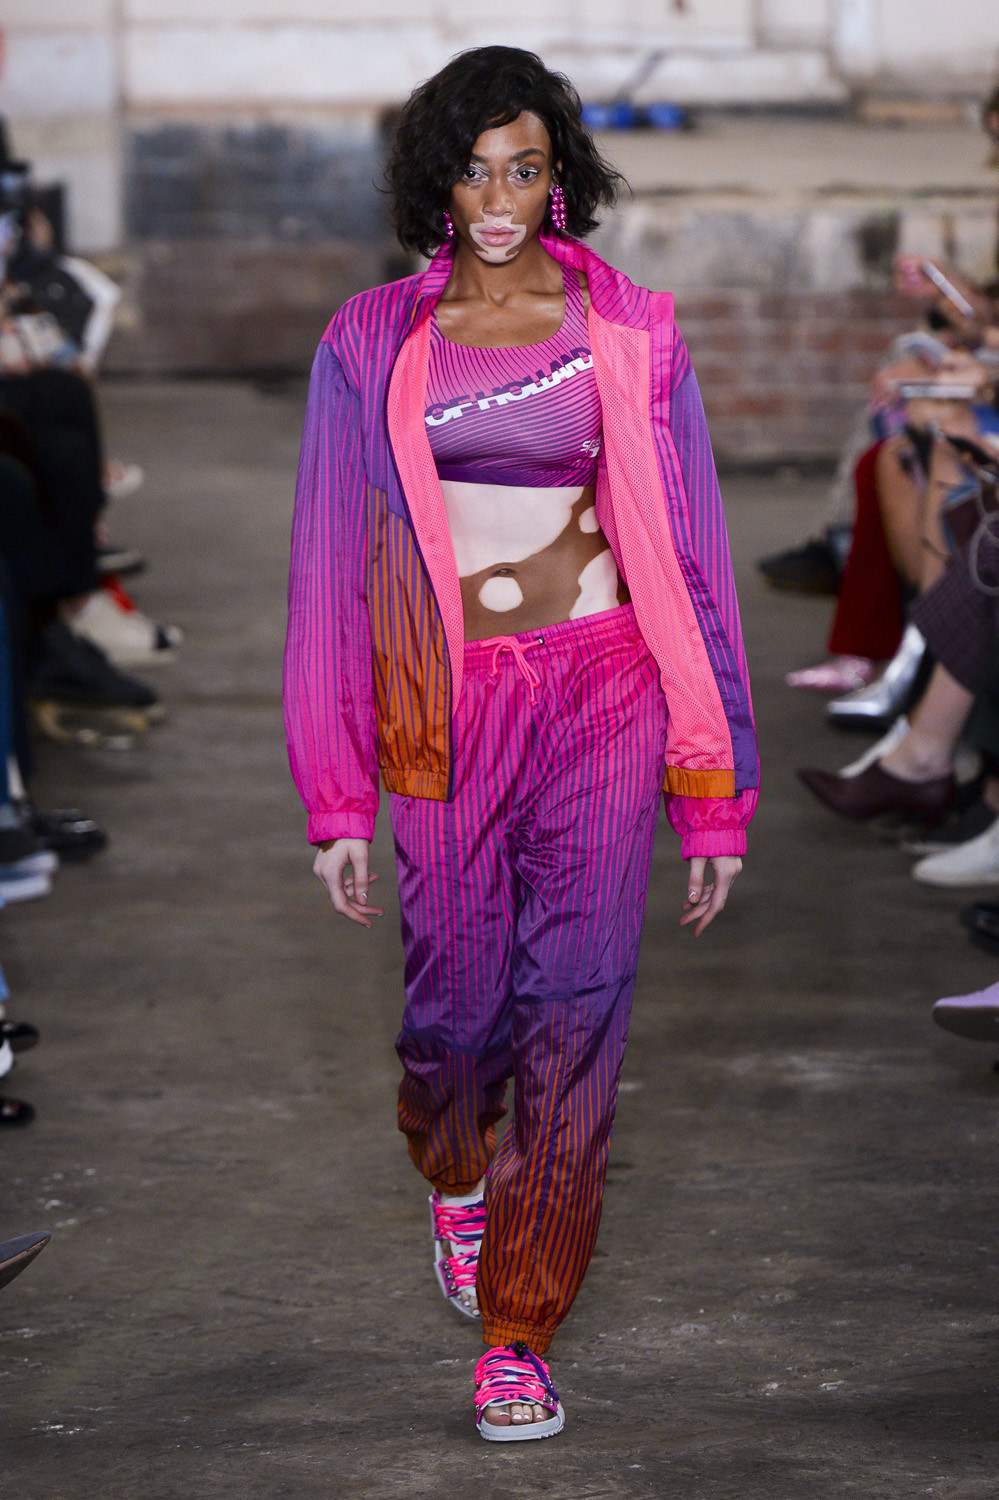 LFW: HOUSE OF HOLLAND SS19